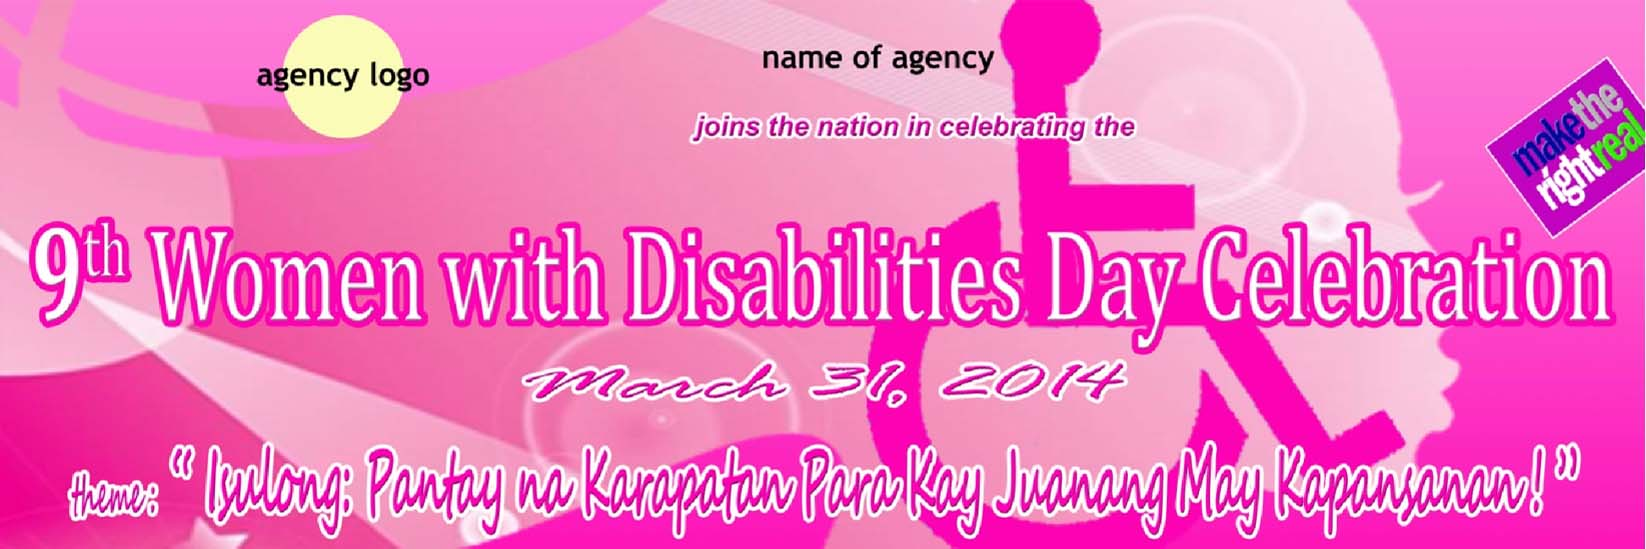 9th Women with Disabilities